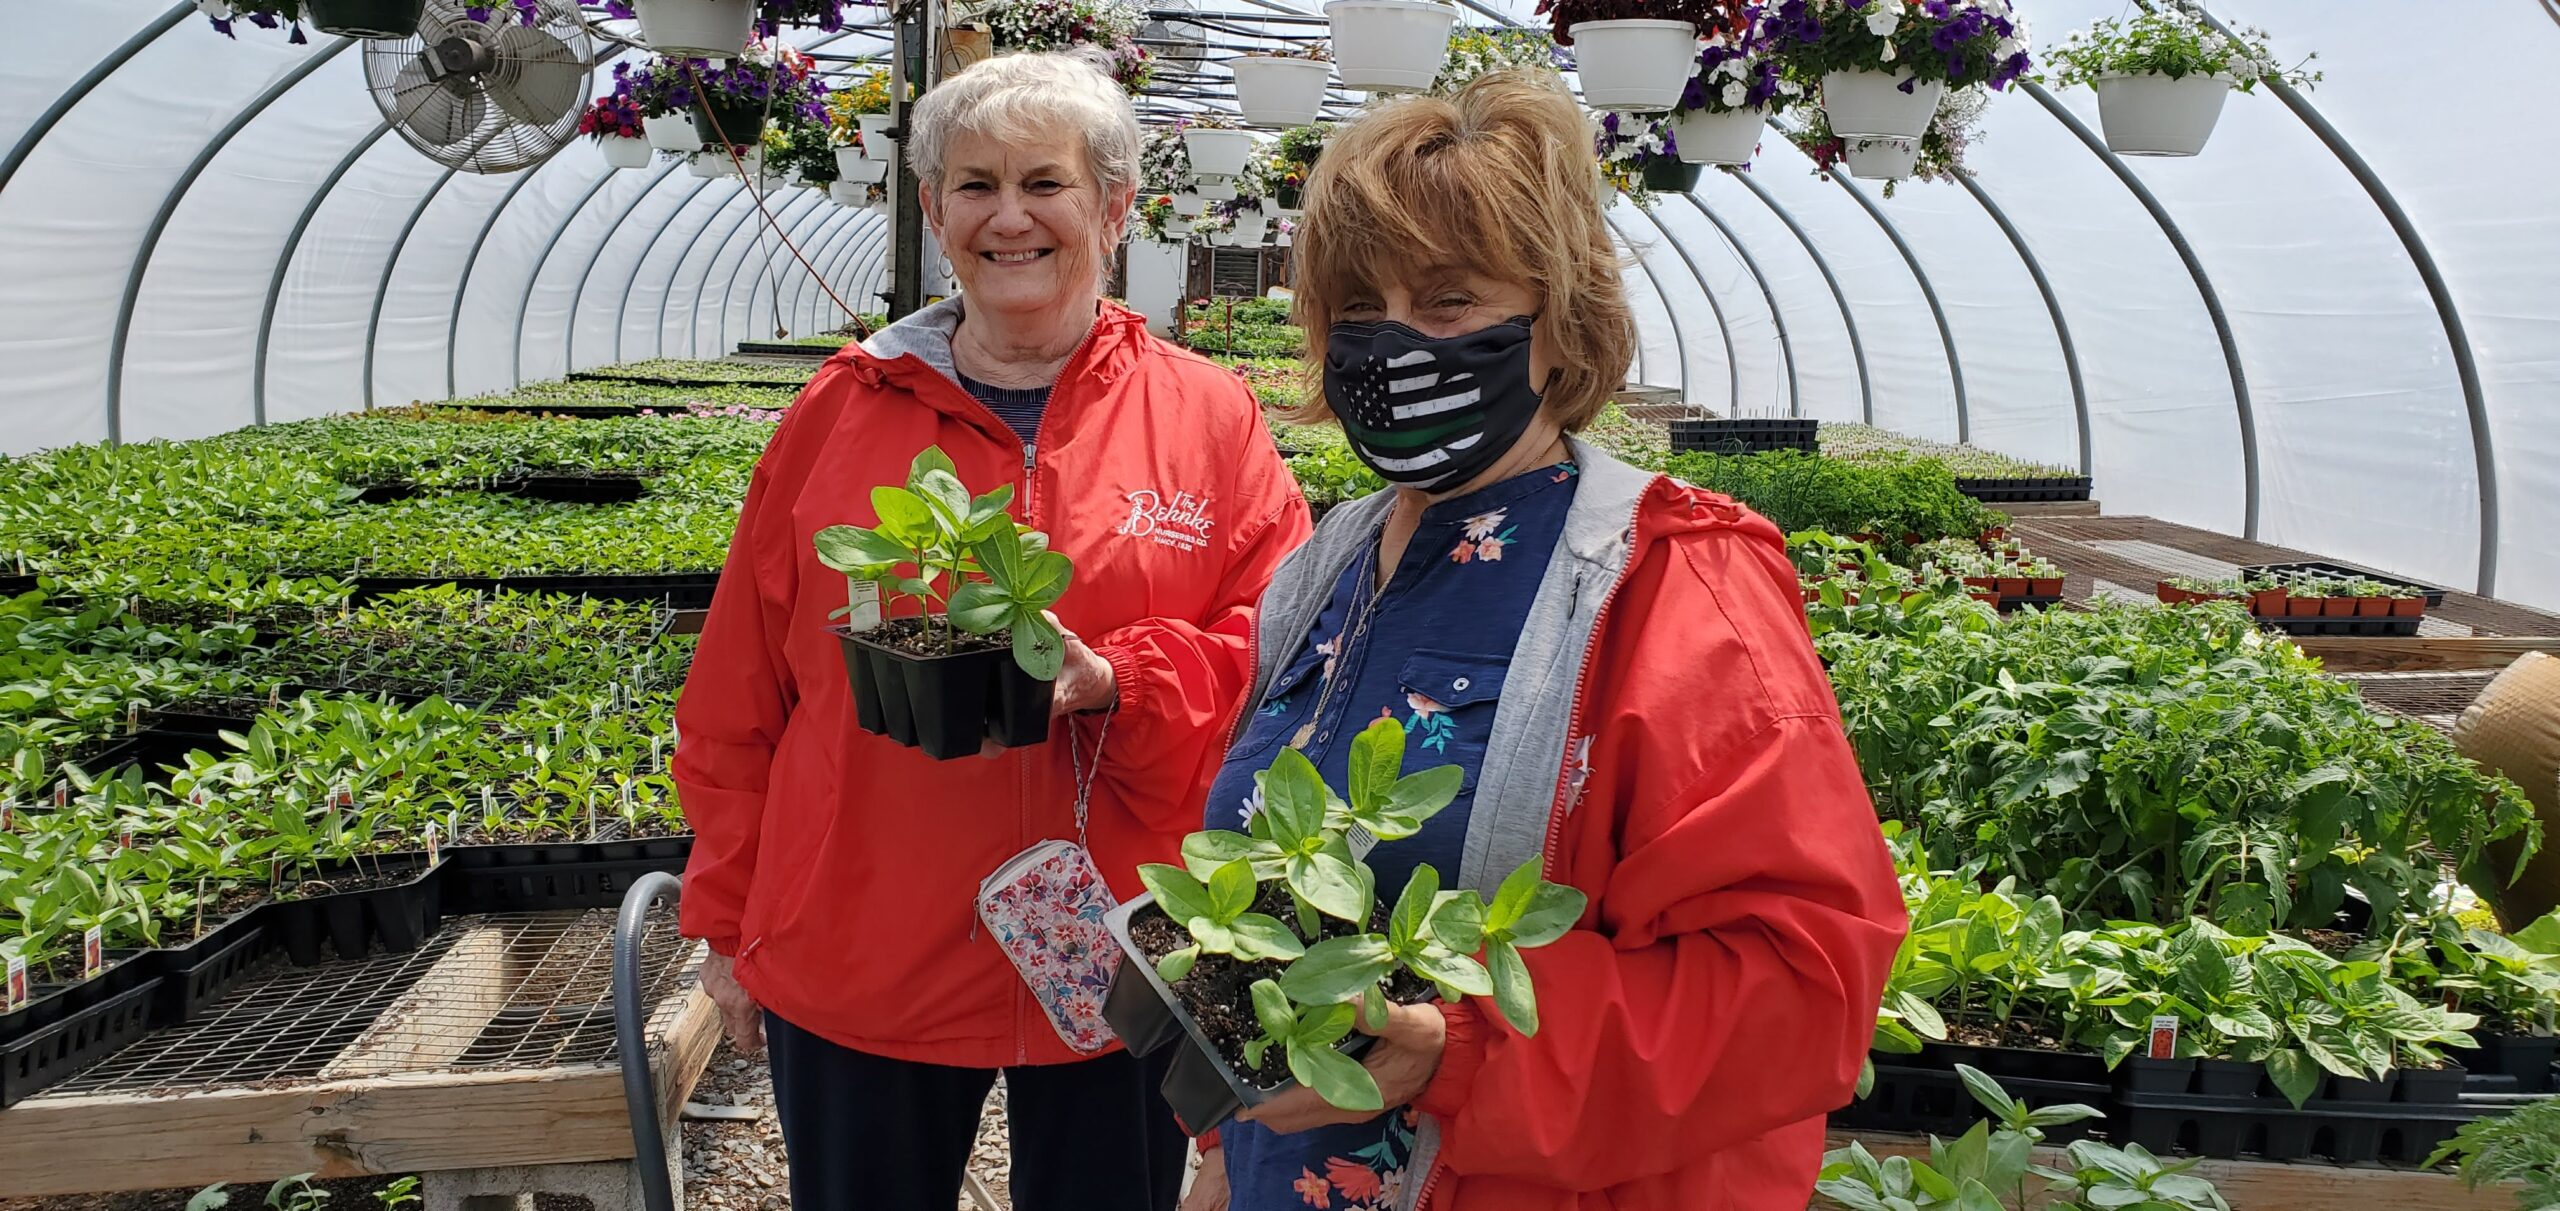 Becky And Anita Visiting Greenway Farms In Cooksville, Maryland